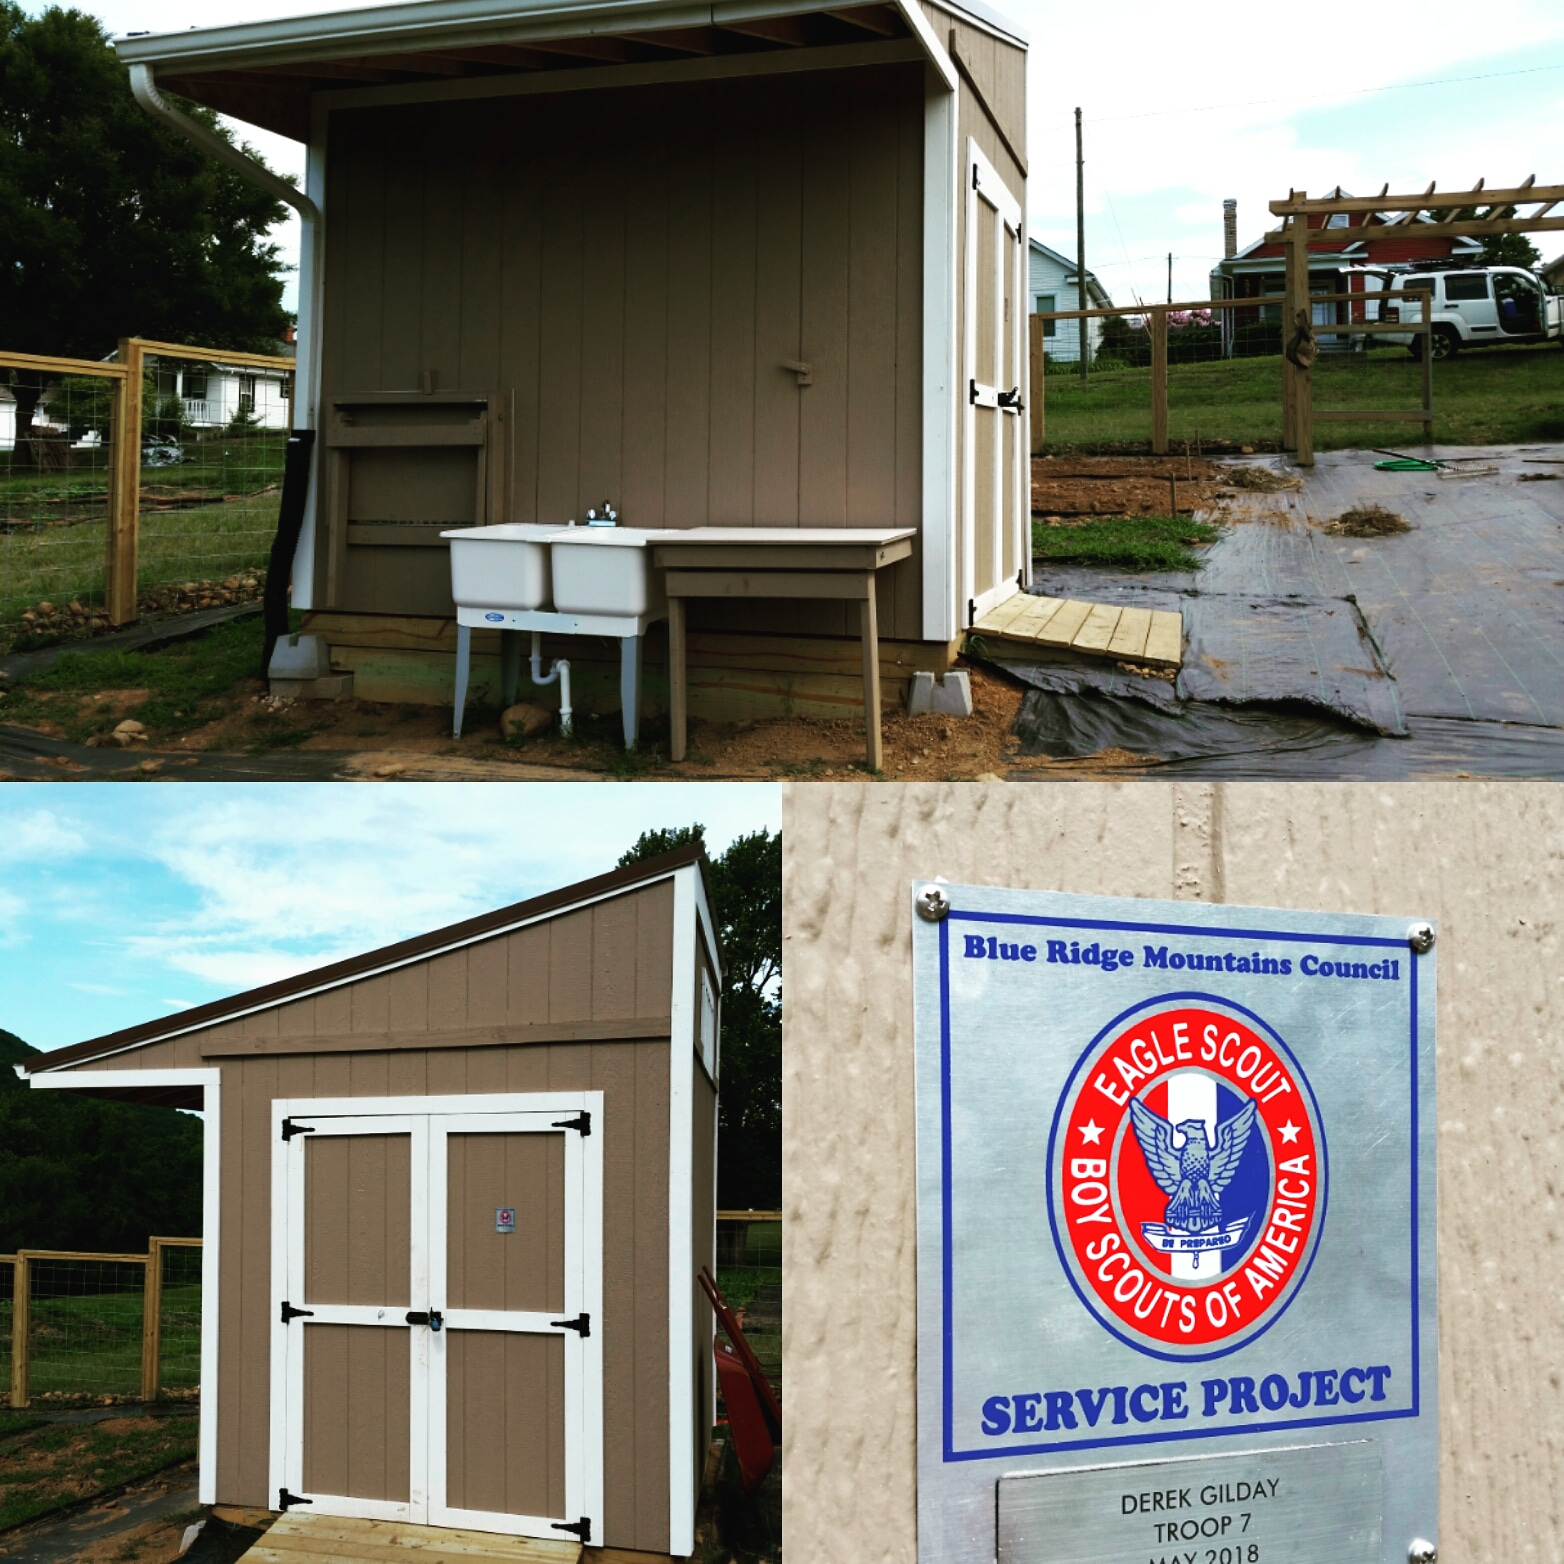 Our shed and wash station, built by Boy Scout Troop #7